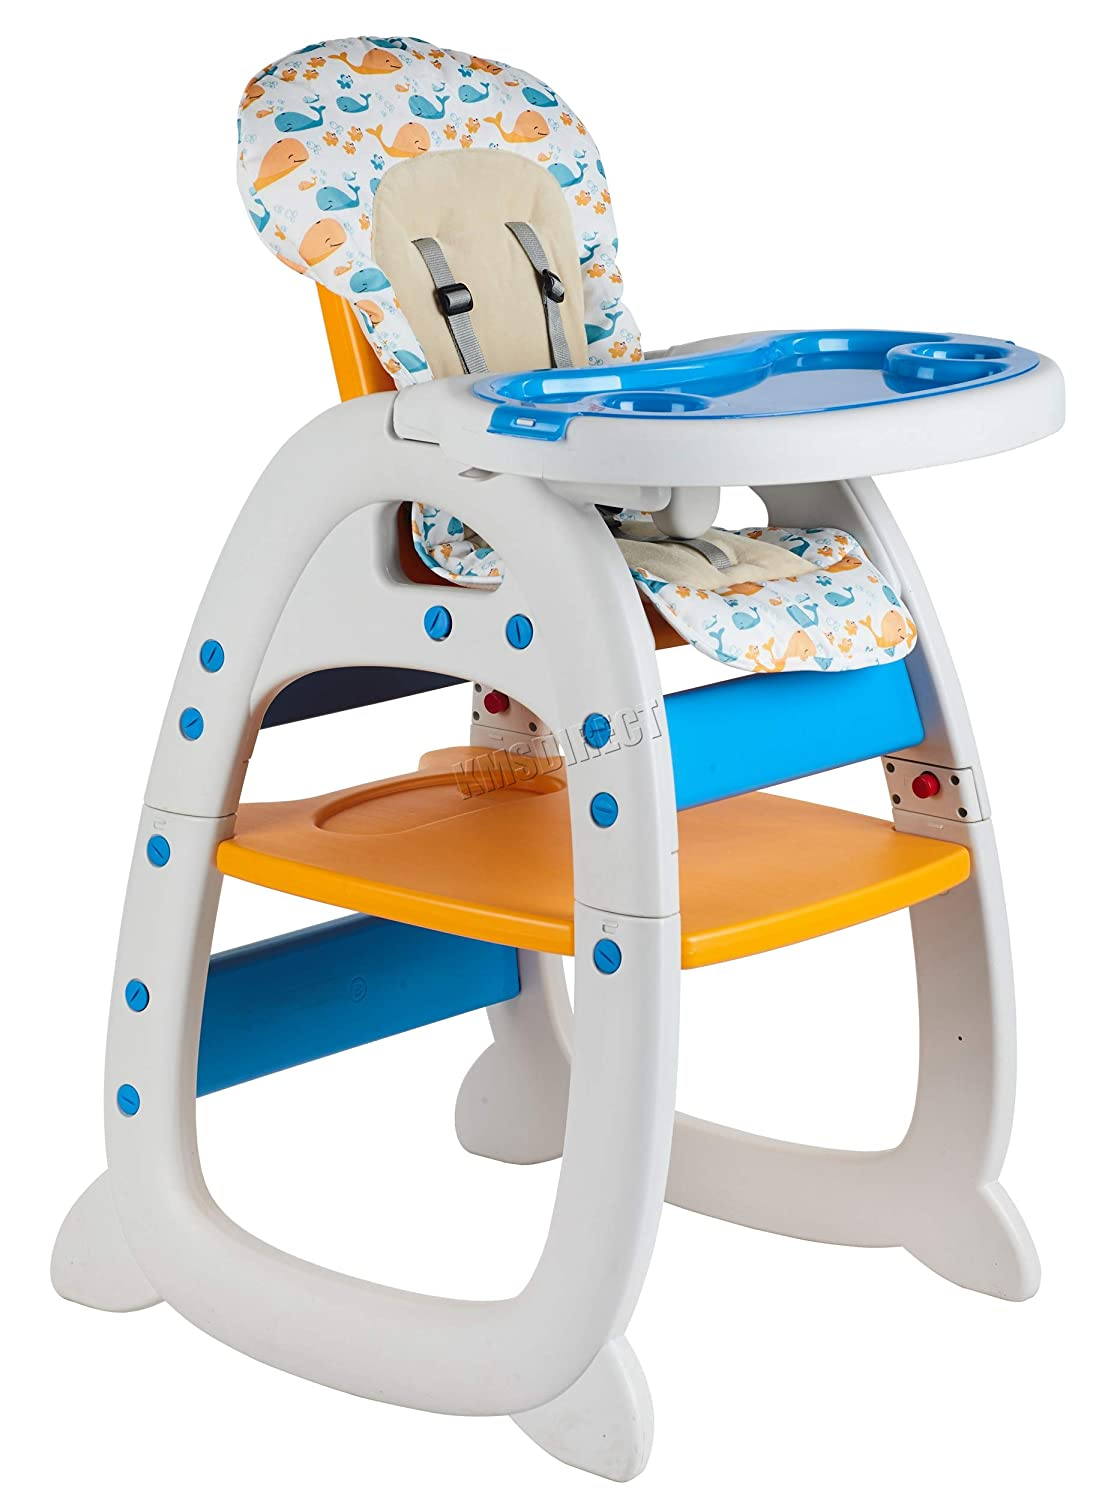 FoxHunter Baby Highchair Infant High Feeding Seat 3in1 Compact Toddler Table Chair Orange New KMS